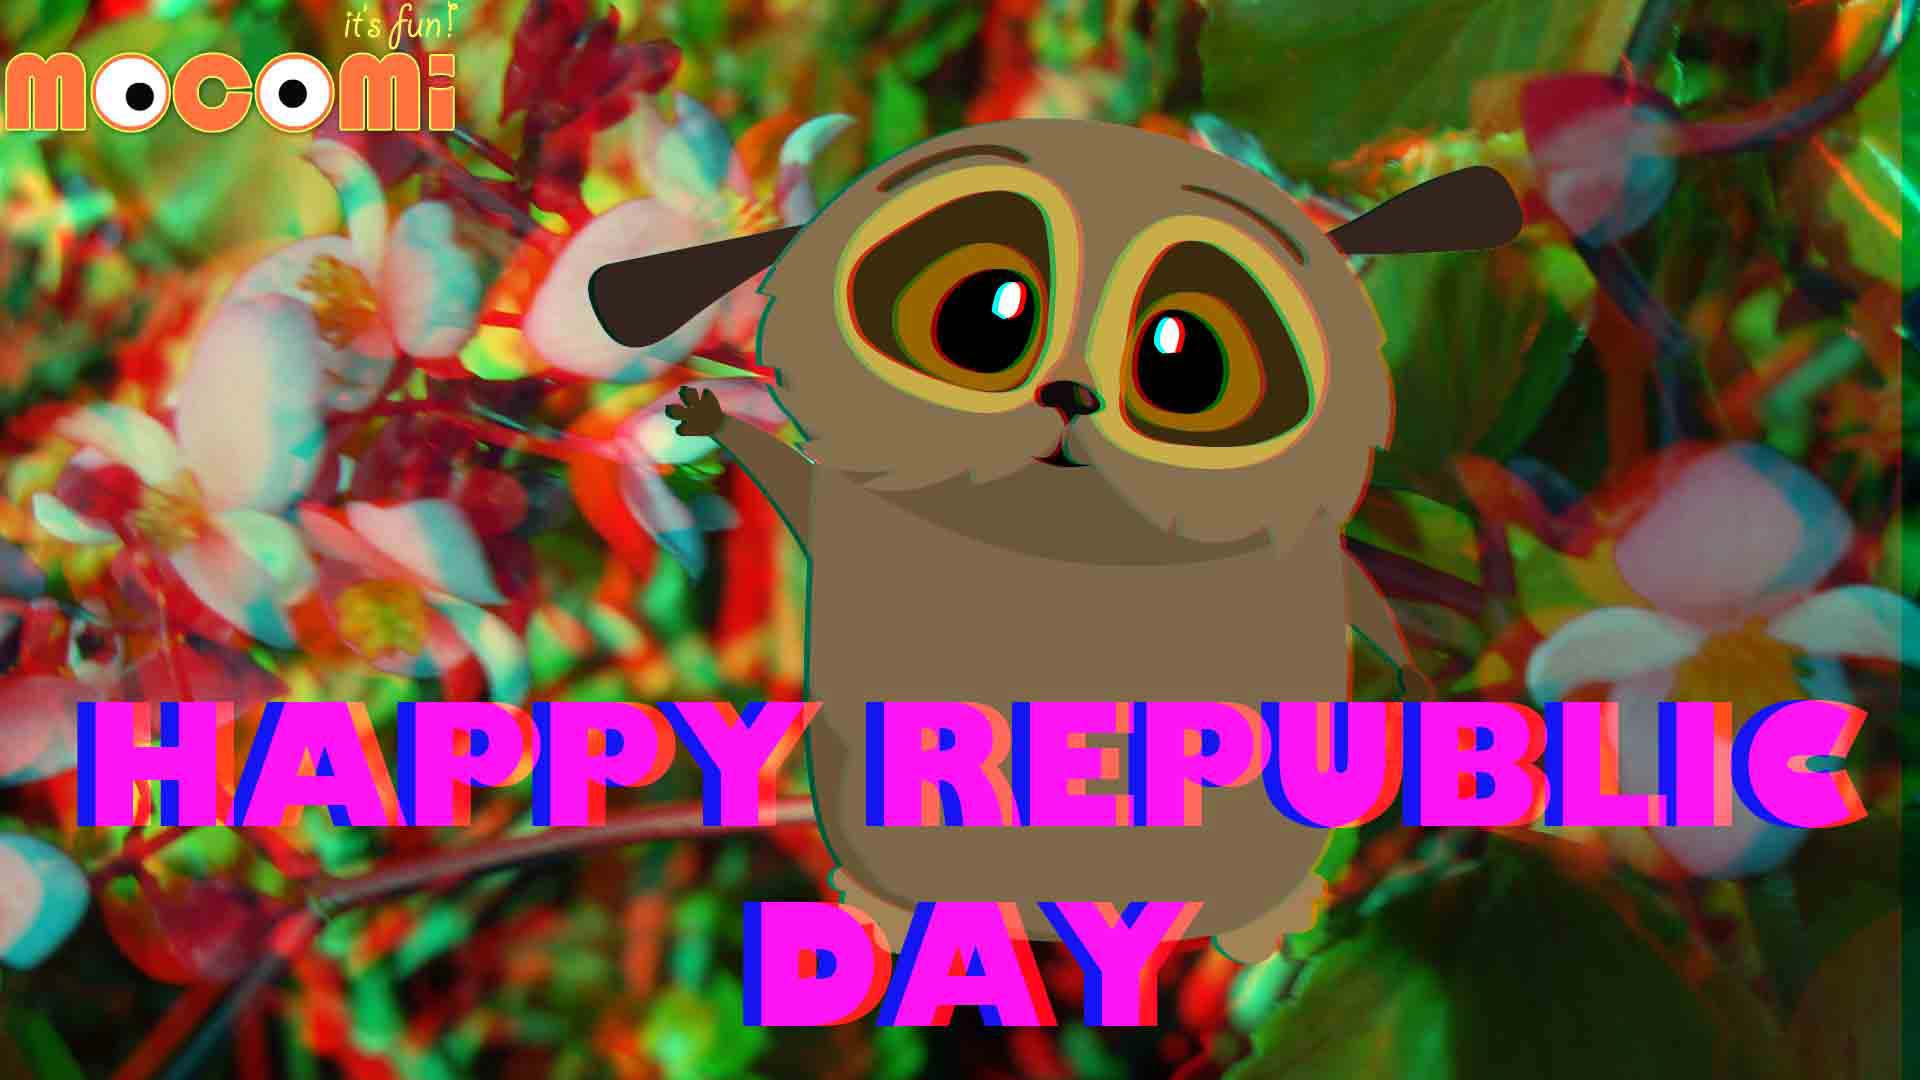 Loris says Happy Republic Day